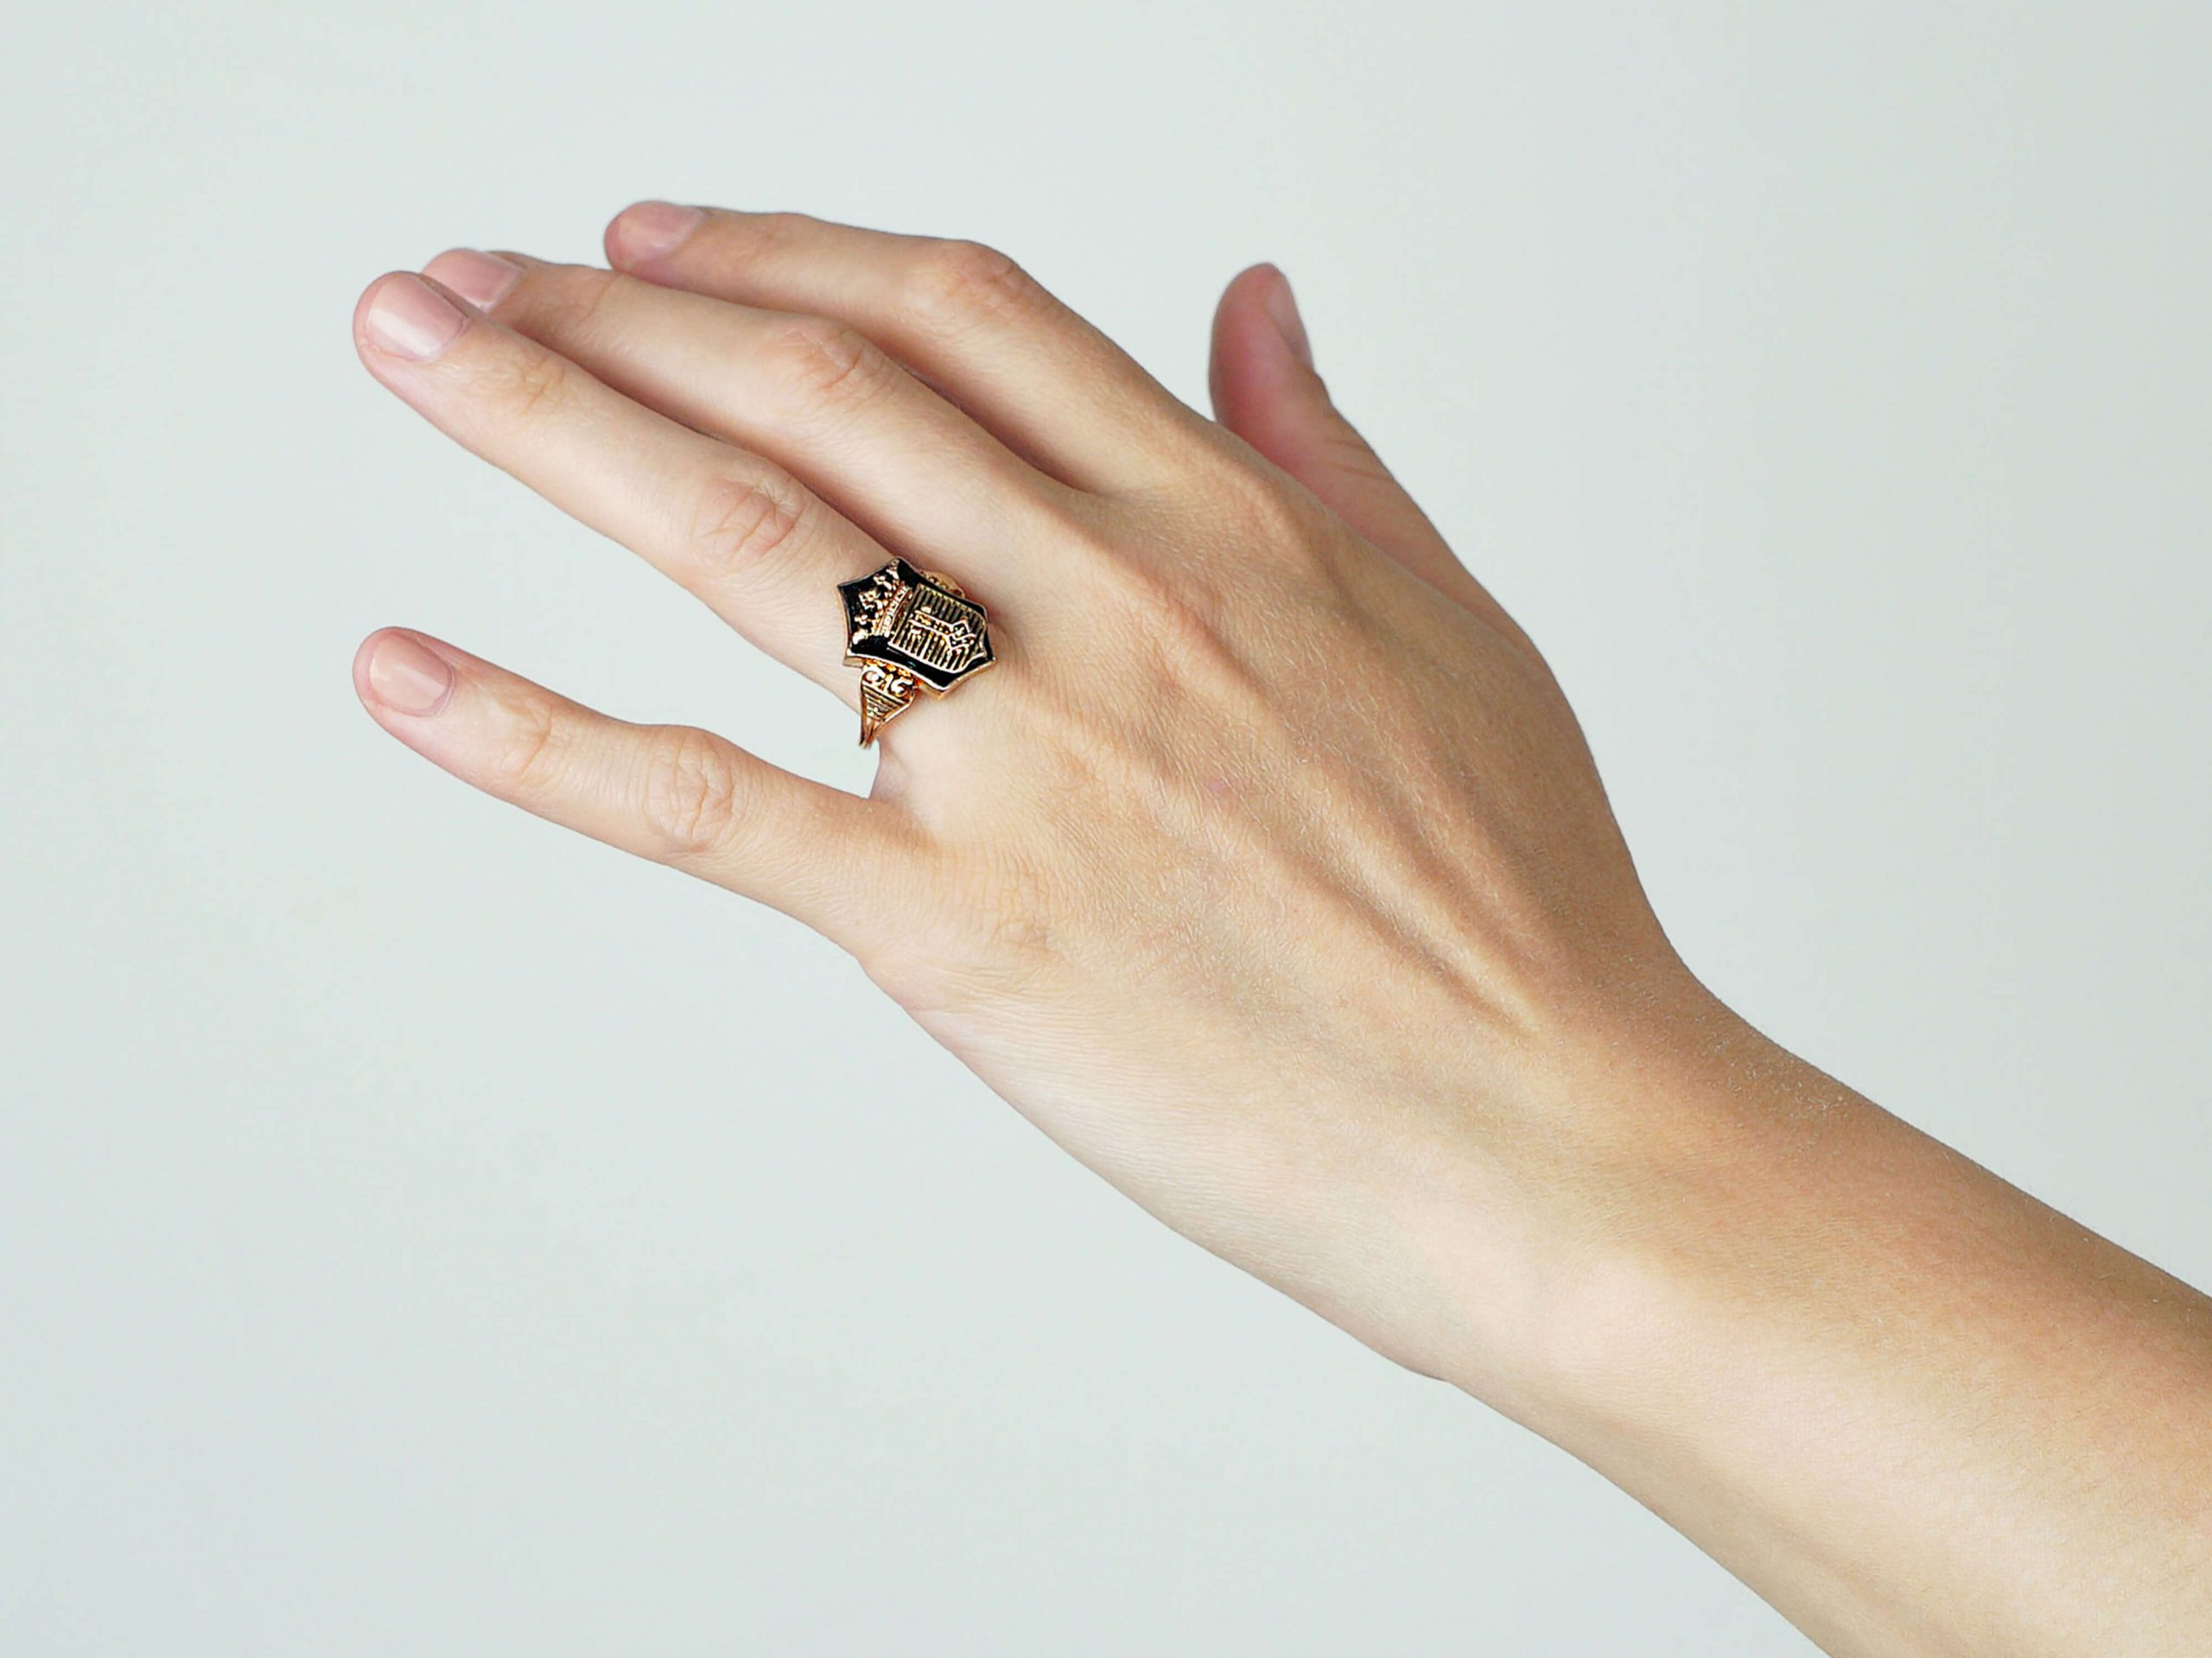 19th Century 18ct Gold & Onyx Ring with Coronet & Two Keys